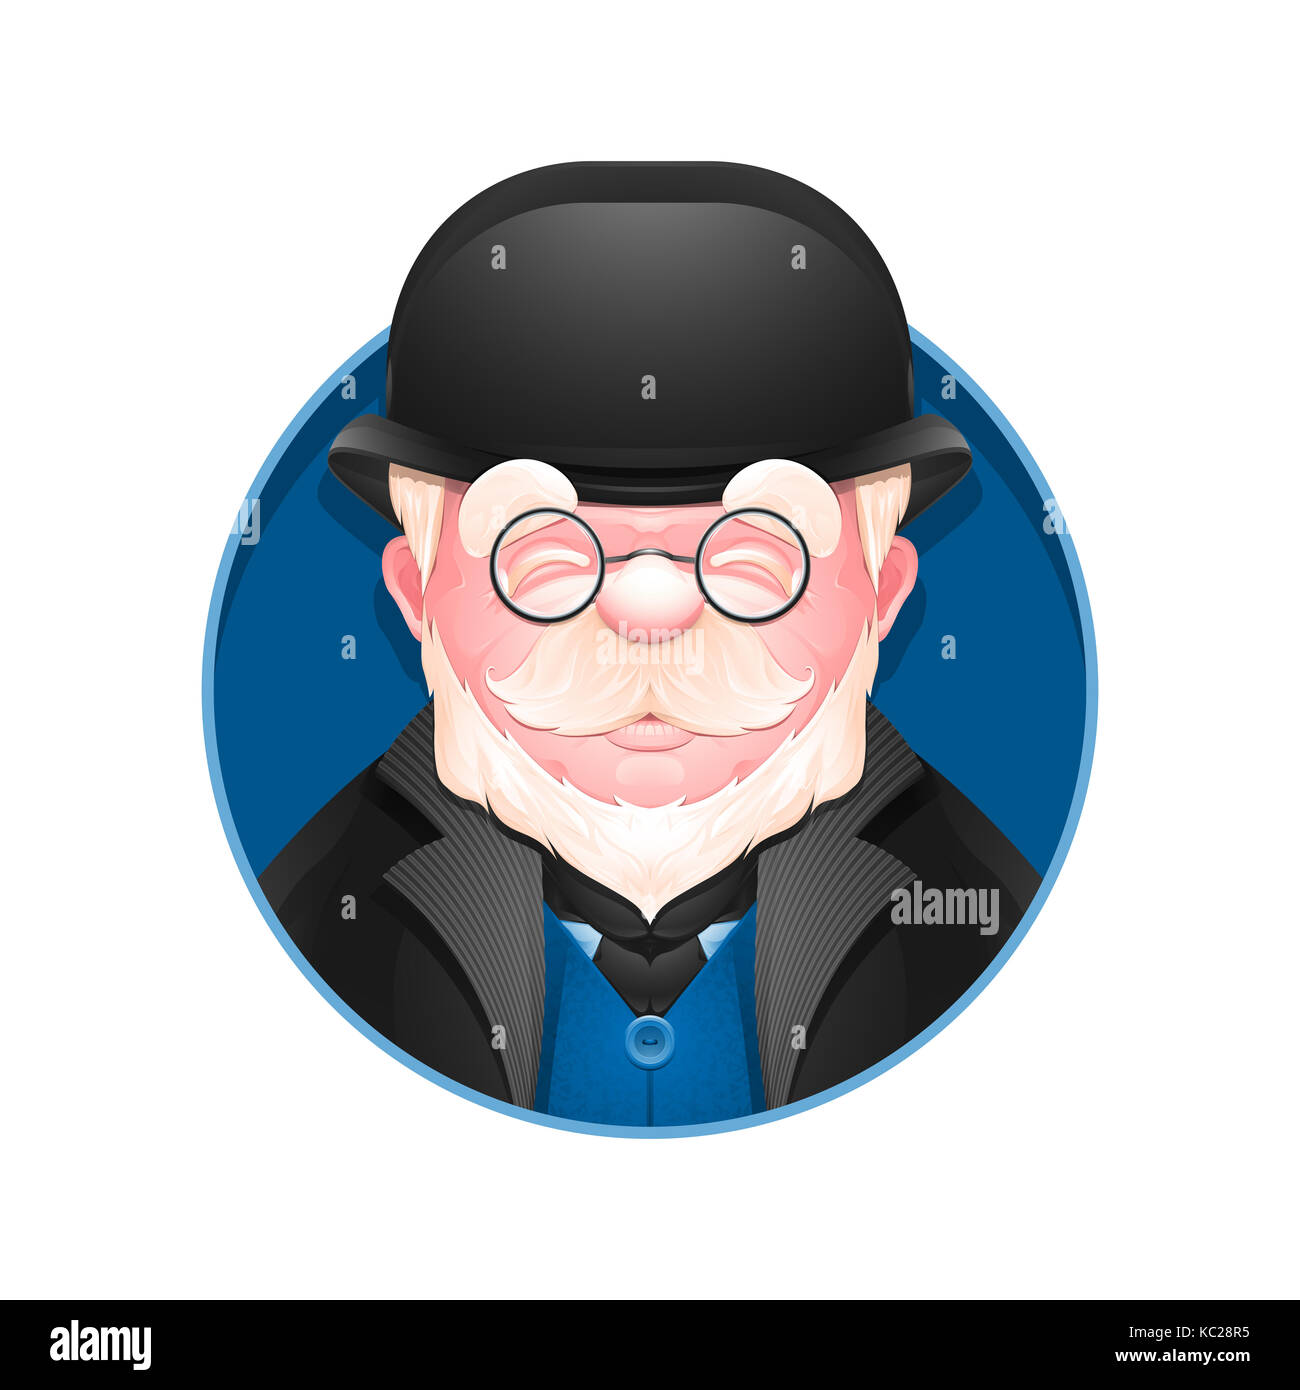 Avatar icon. Portrait of adult business man in bowler hat. Cartoon englishman. - Stock Image